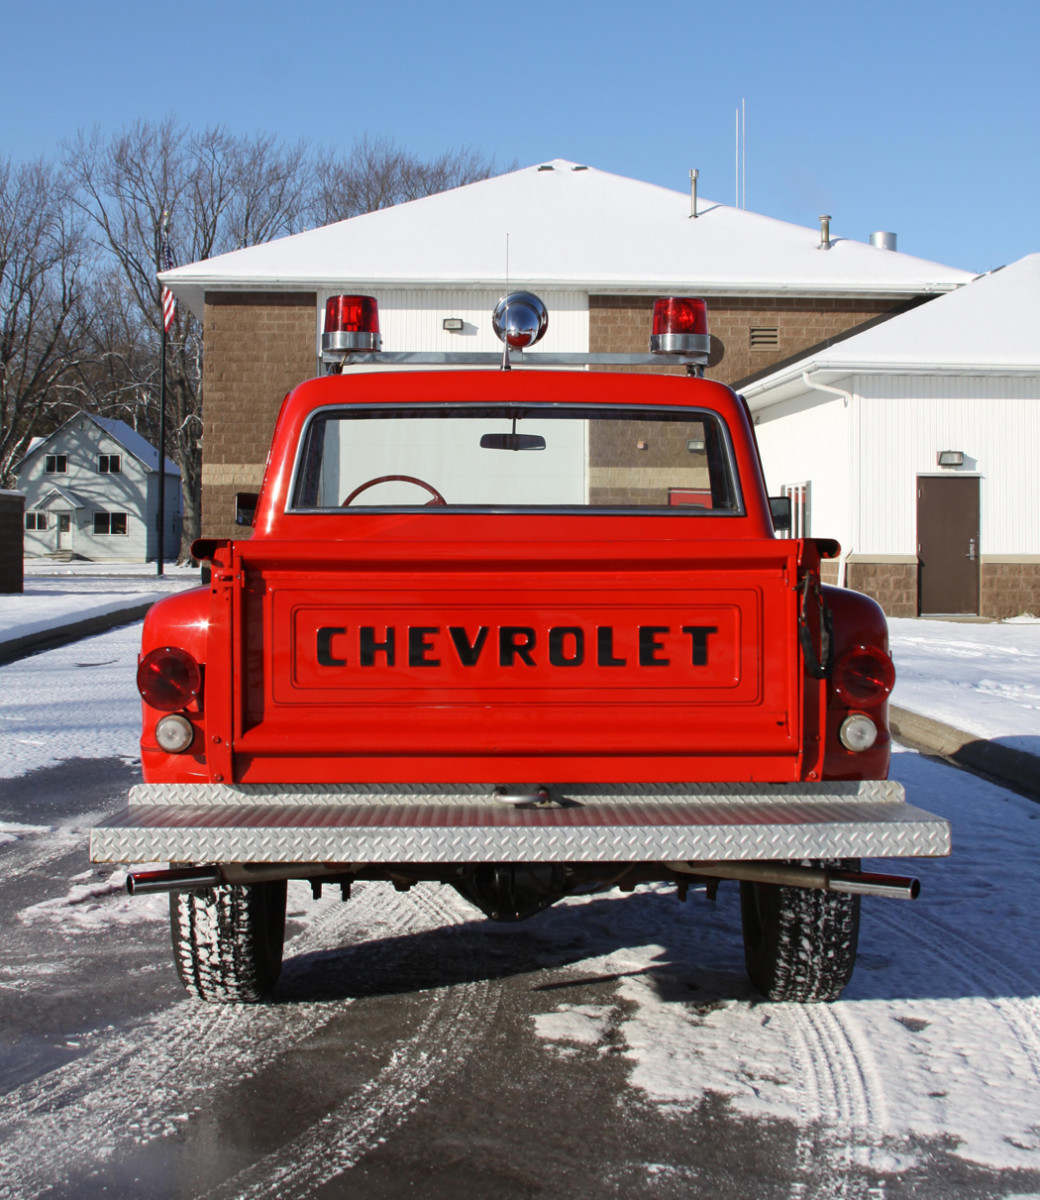 The K/10 once had a rack in the bed for firemen to hang onto when driving to brush fires, but it was removed in its early-1990s repaint. Besides its paint and chrome wheels, the truck is in original, unrestored condition.